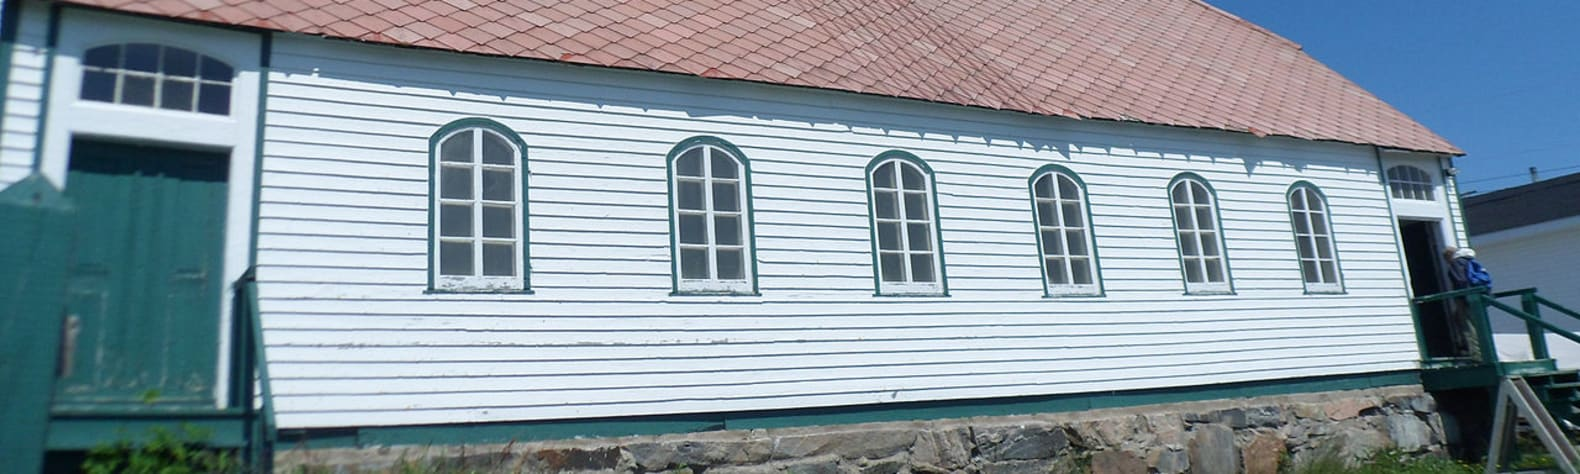 Hopedale Mission National Historic Site